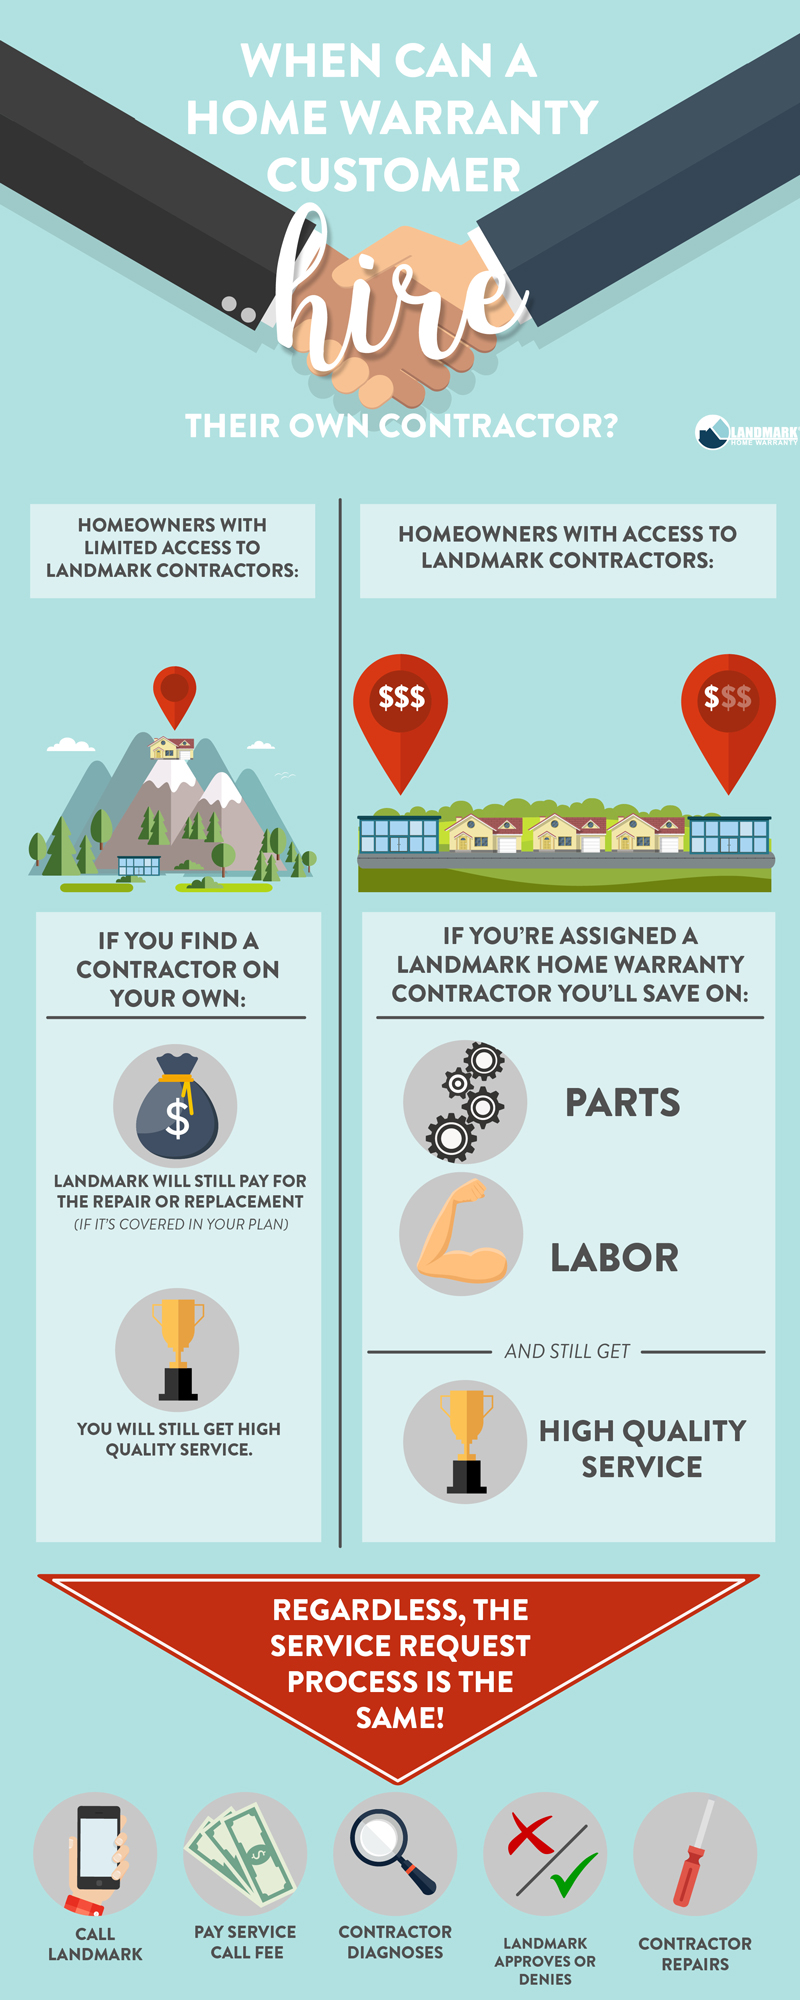 infographic explaining when a home warranty contractor can and cannot hire their own contractor.